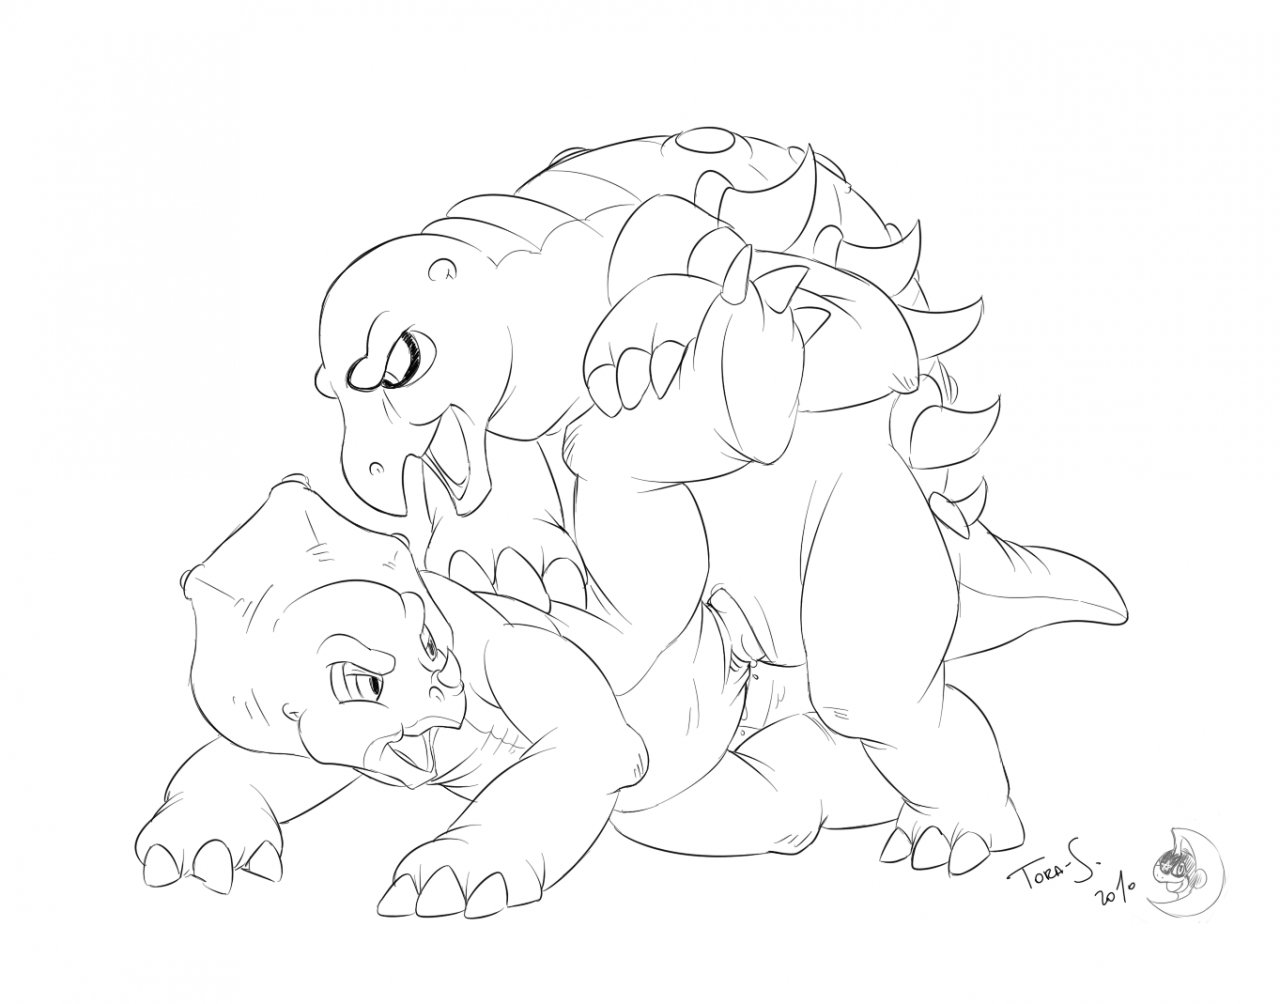 land before time topsy the Marine a go go 2